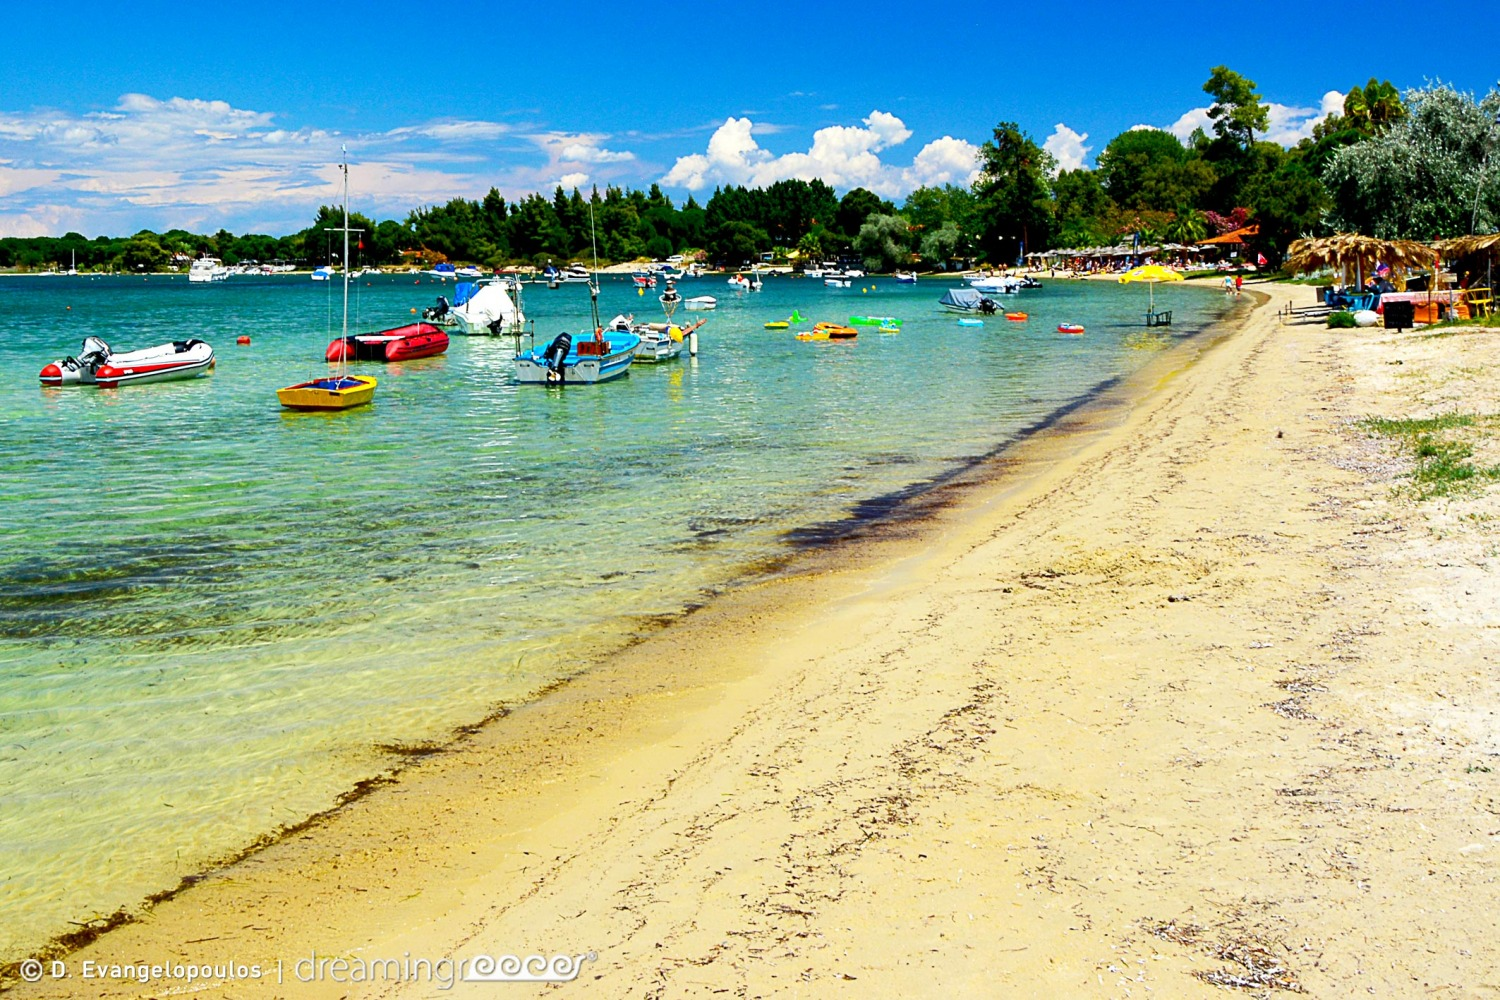 Camping in Greece Halkidiki Vourvourous beach